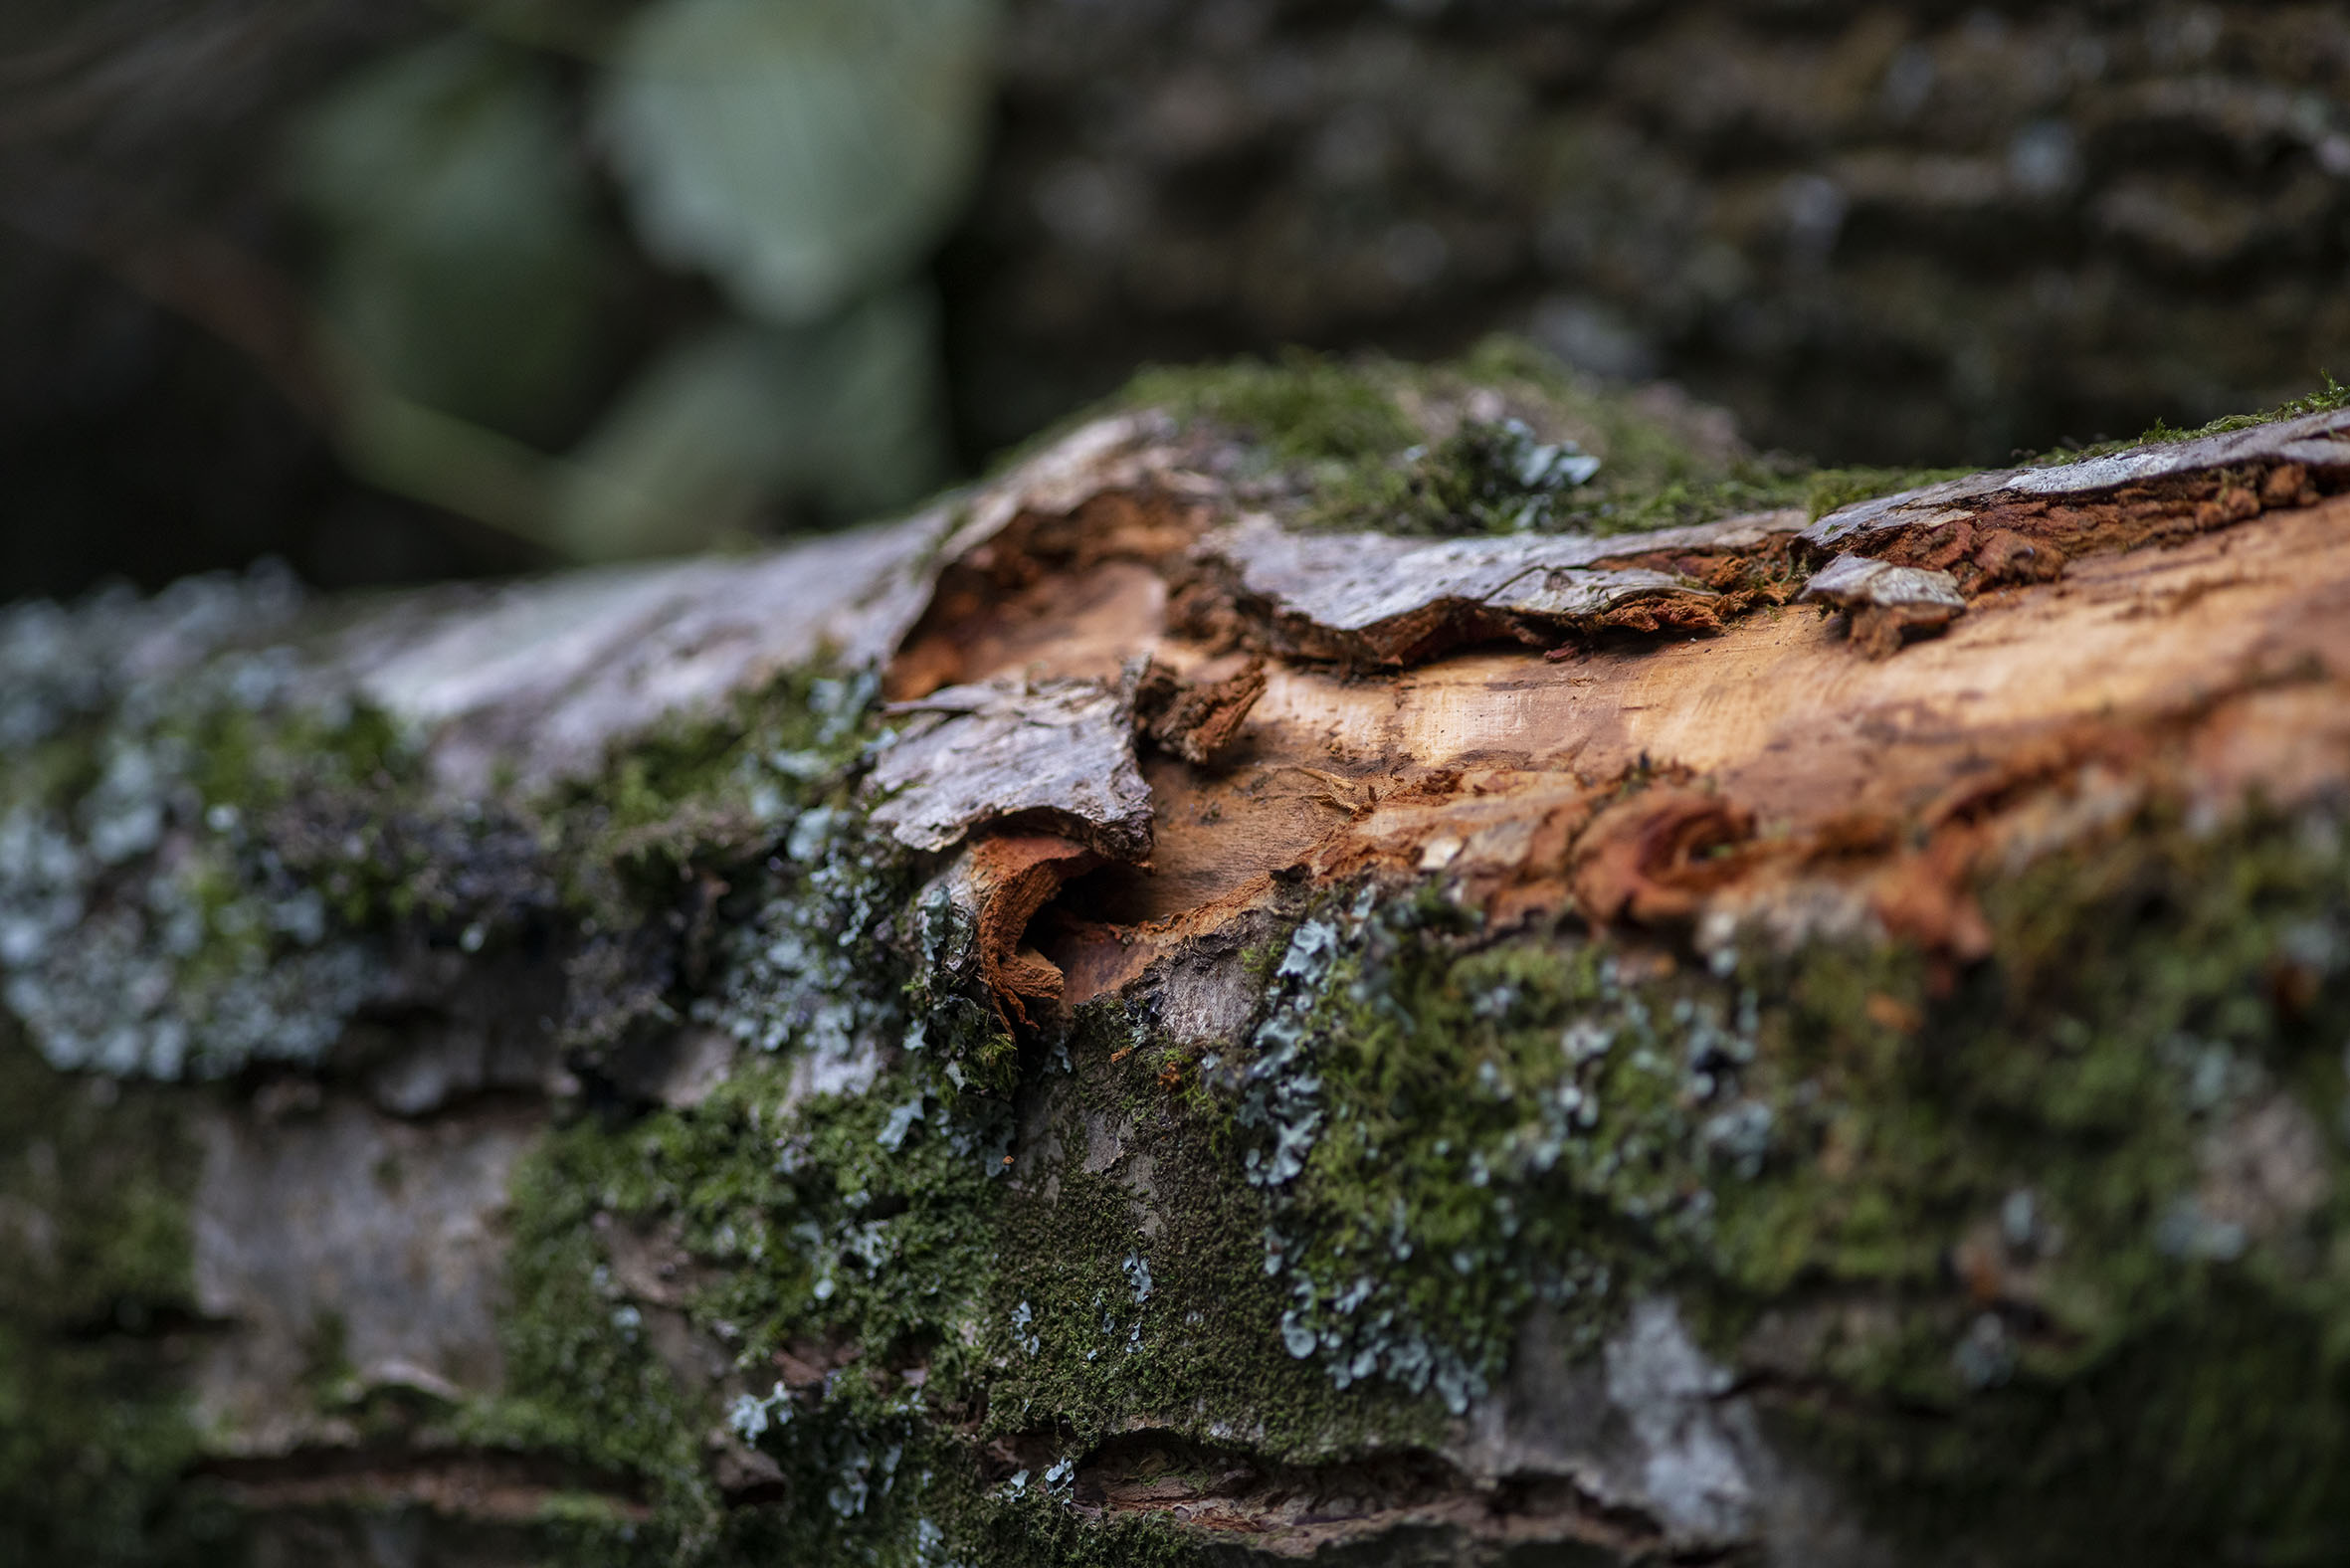 Grey squirrel bark stripping in Tehidy Country Park, Cornwall.